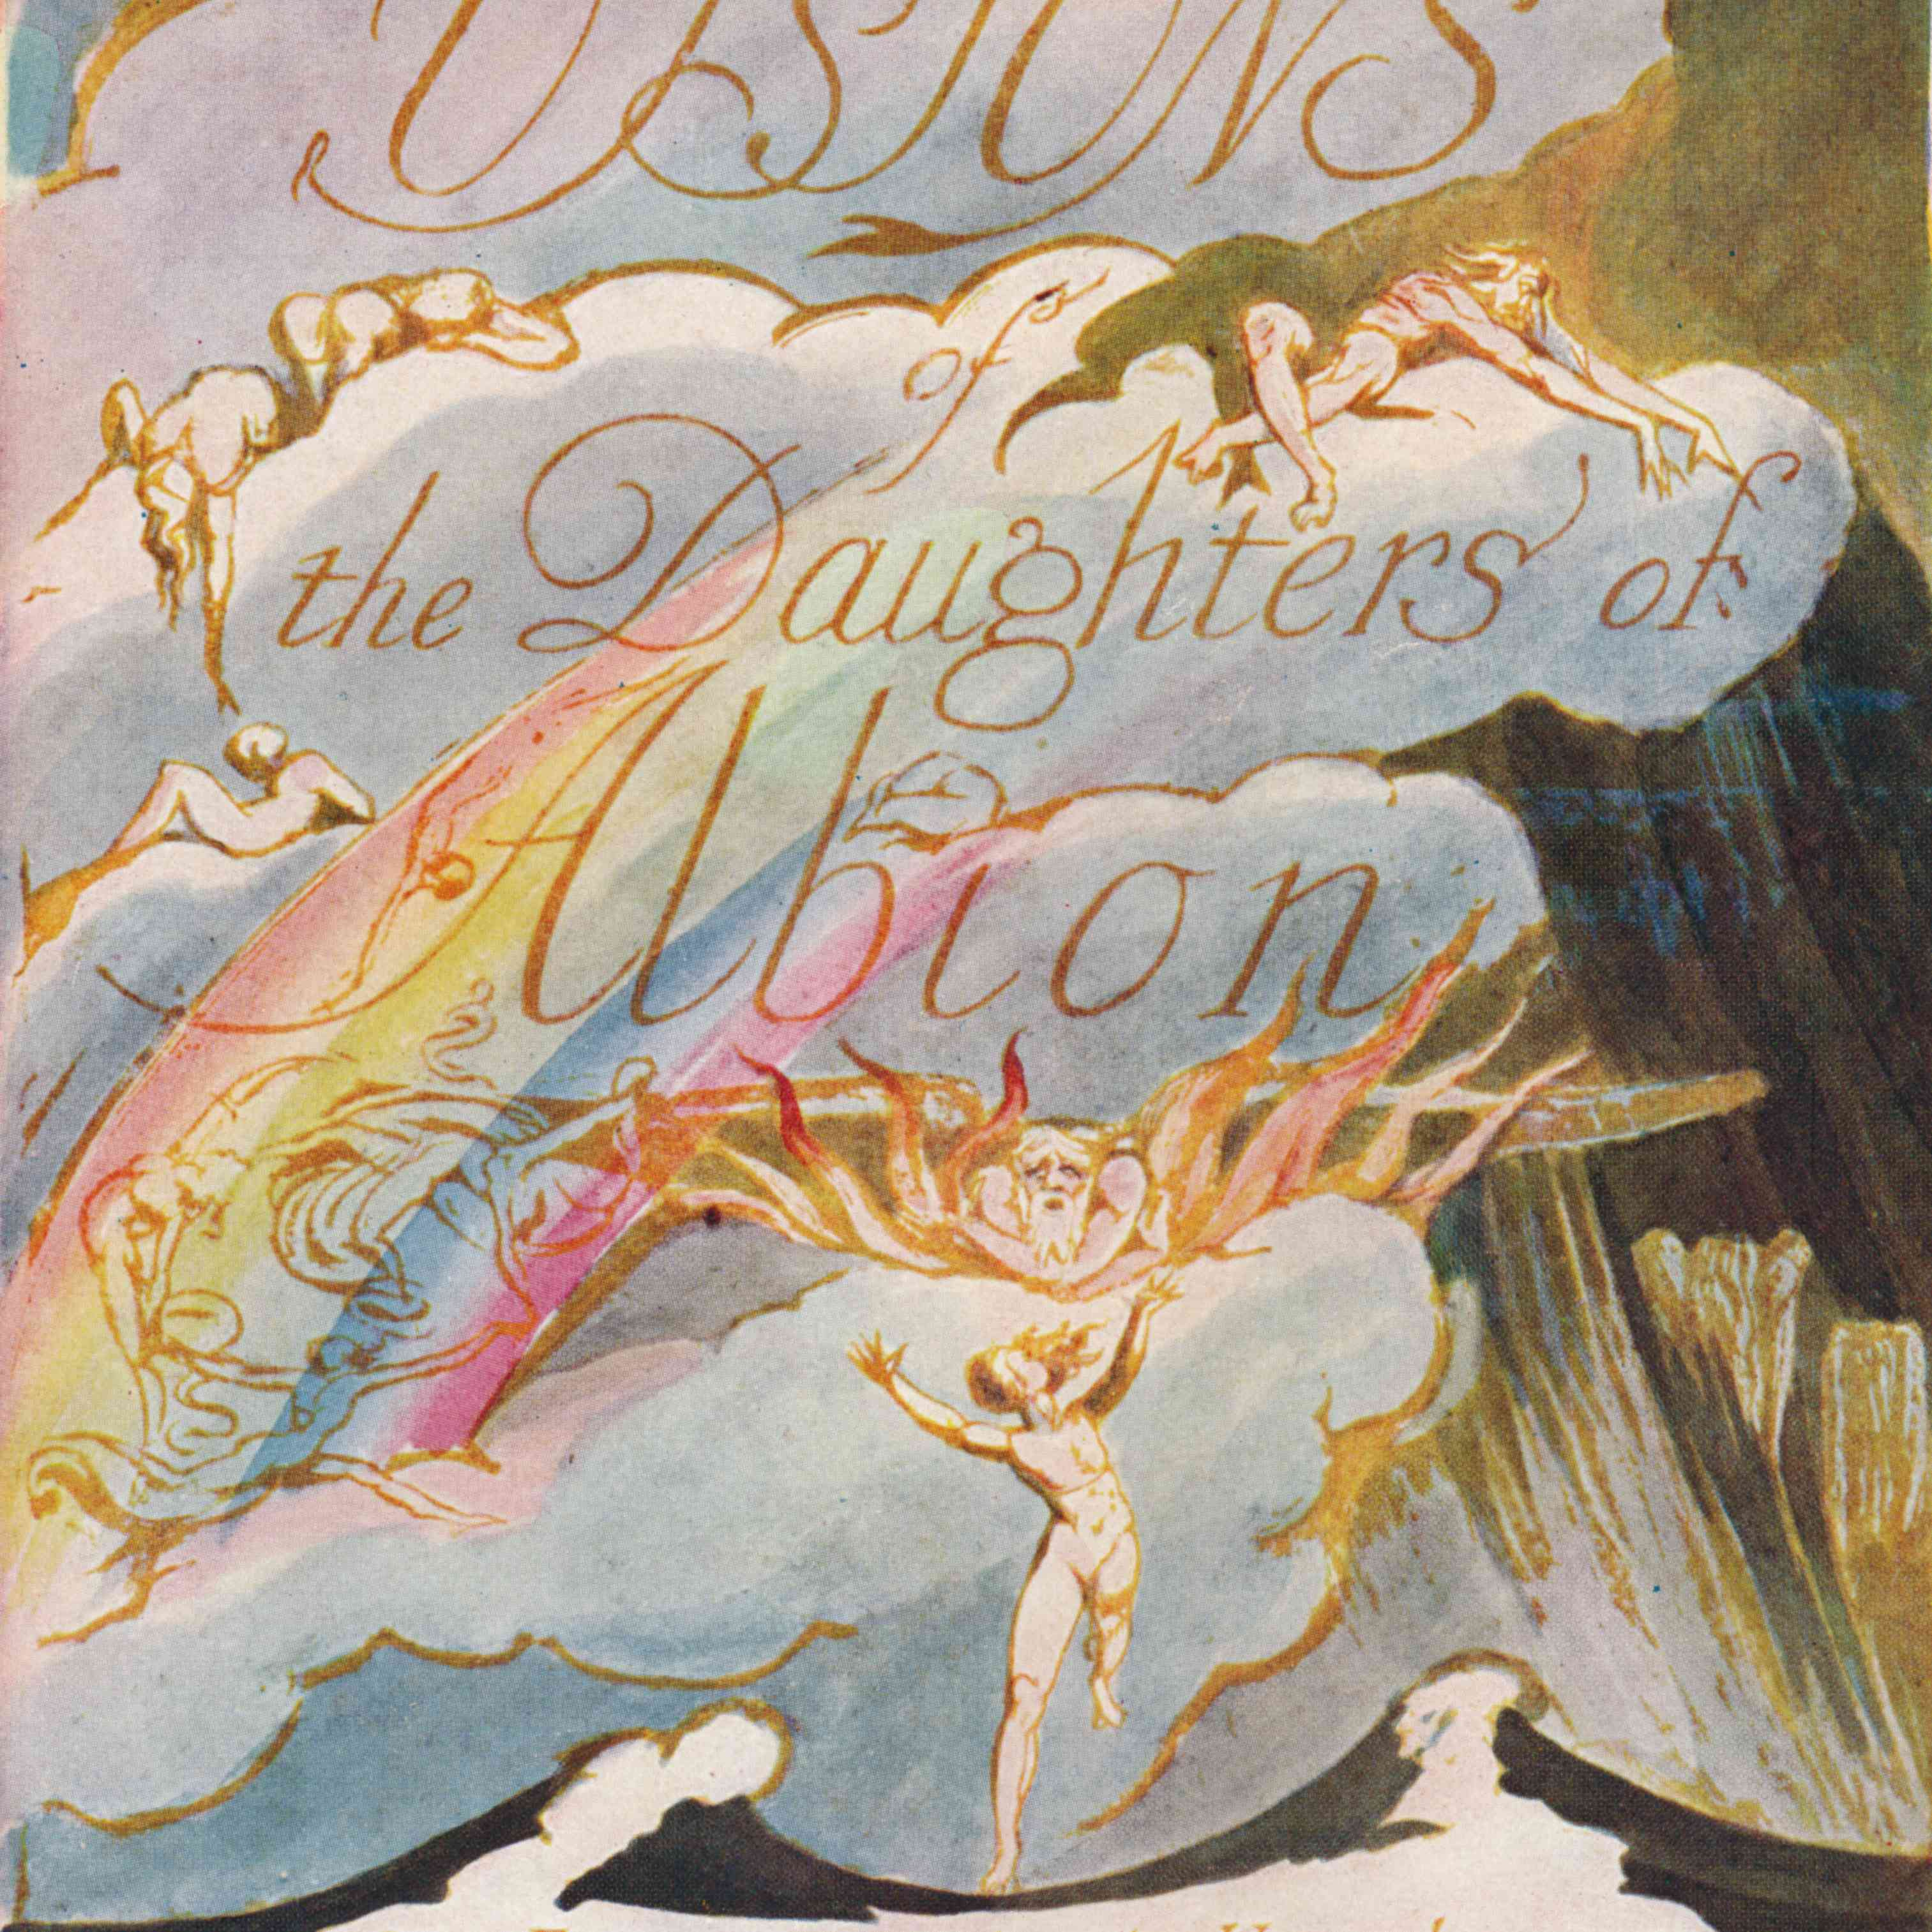 Visions of the Daughters of Albion', 1793